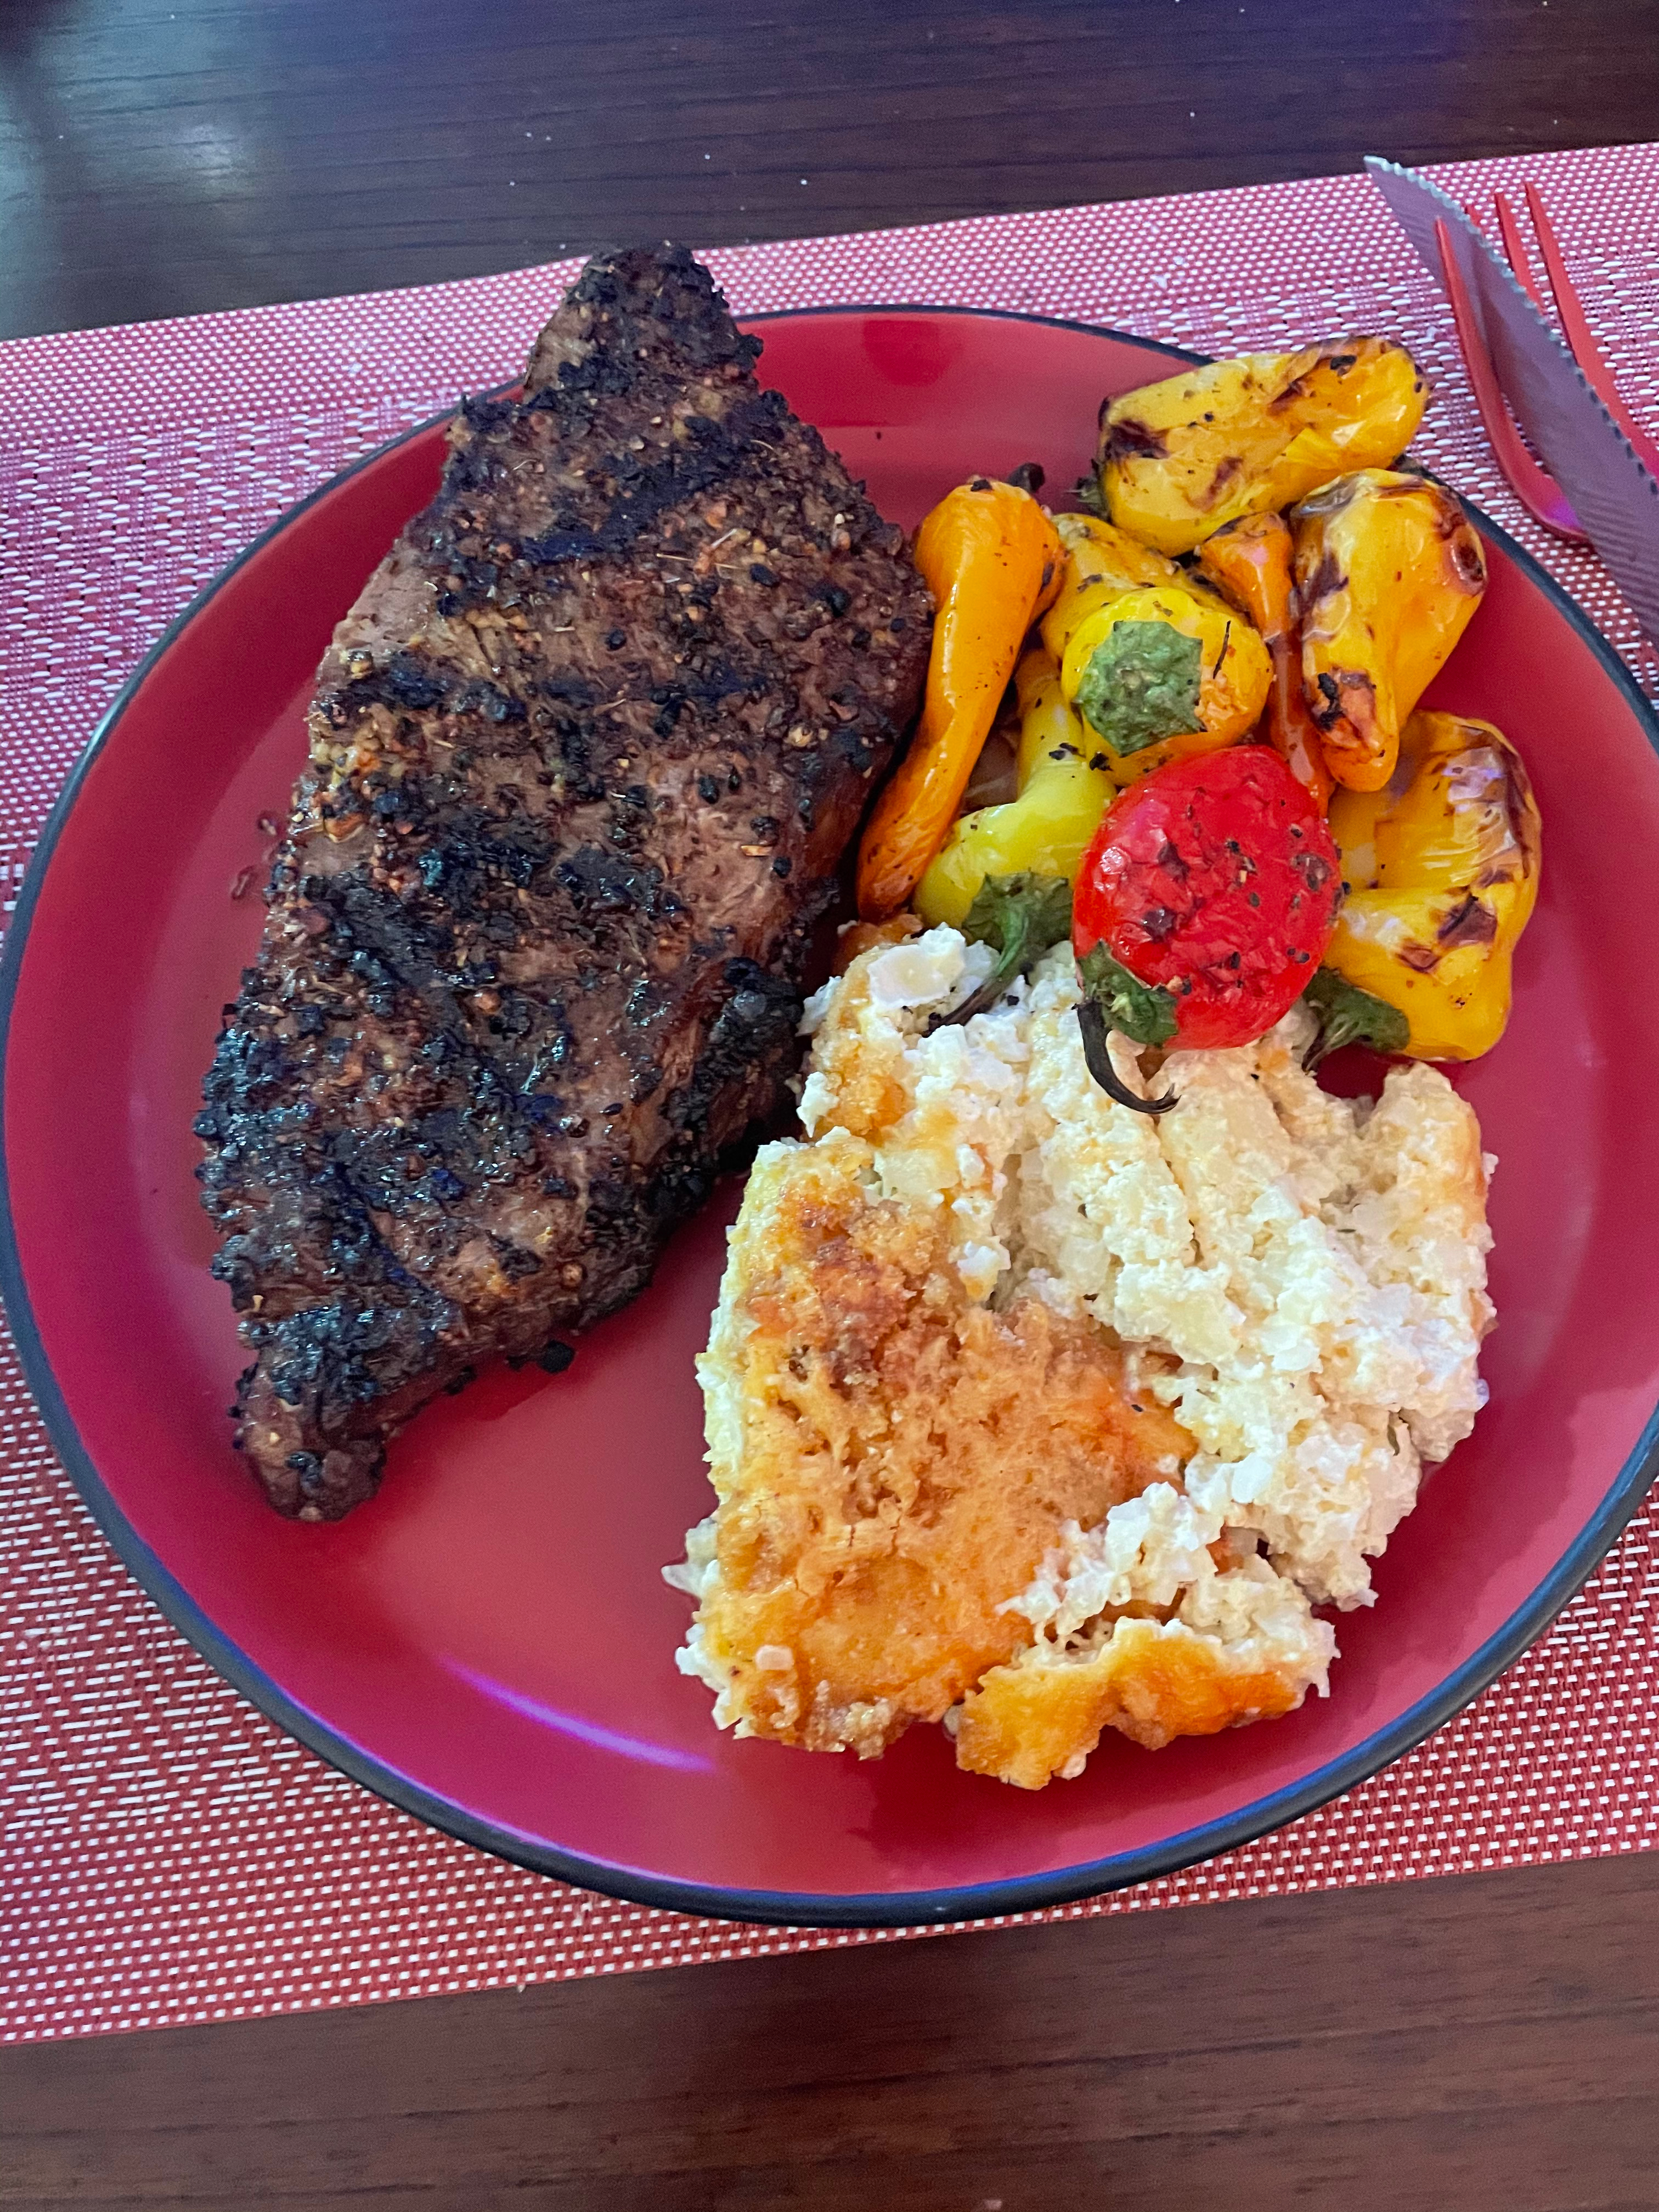 Steak with cauliflower casserole and peppers.